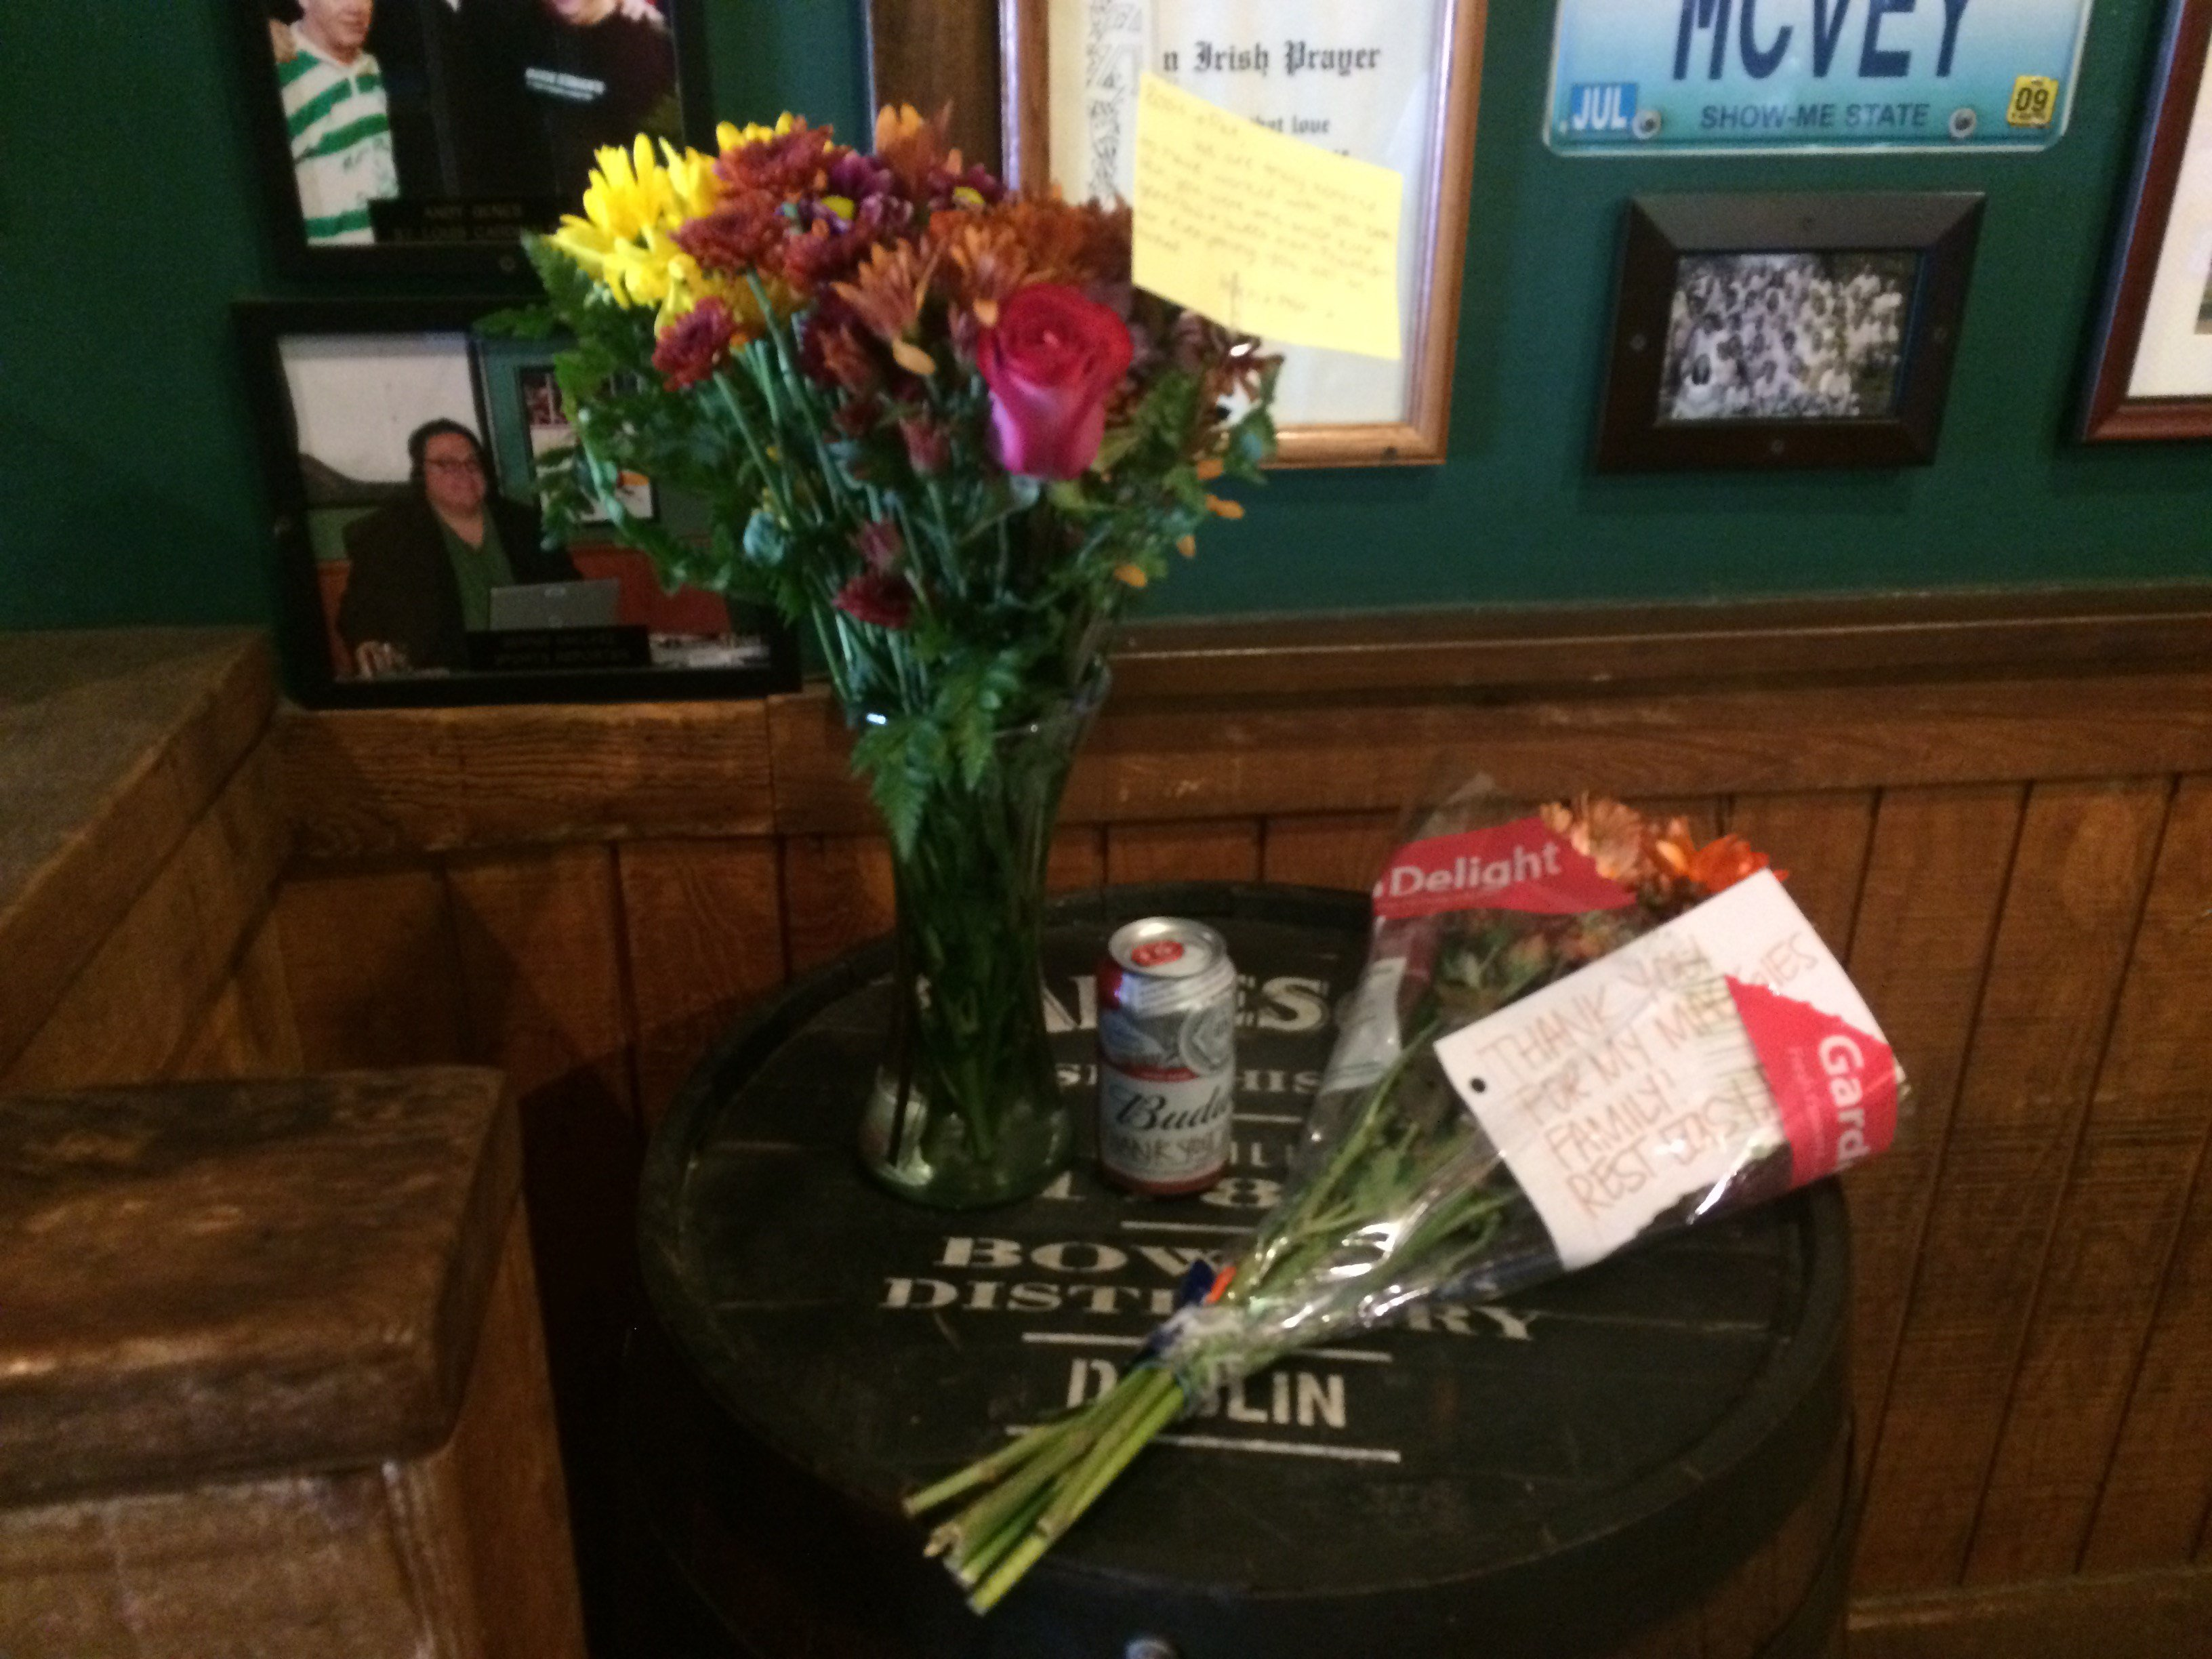 Bouquets of flowers and a beer were left on the steps of Maggie O'Brien's Irish Pub & Restaurant in memory of late co-owner Pat McVey who was shot and killed while driving on I-55 in St. Louis.